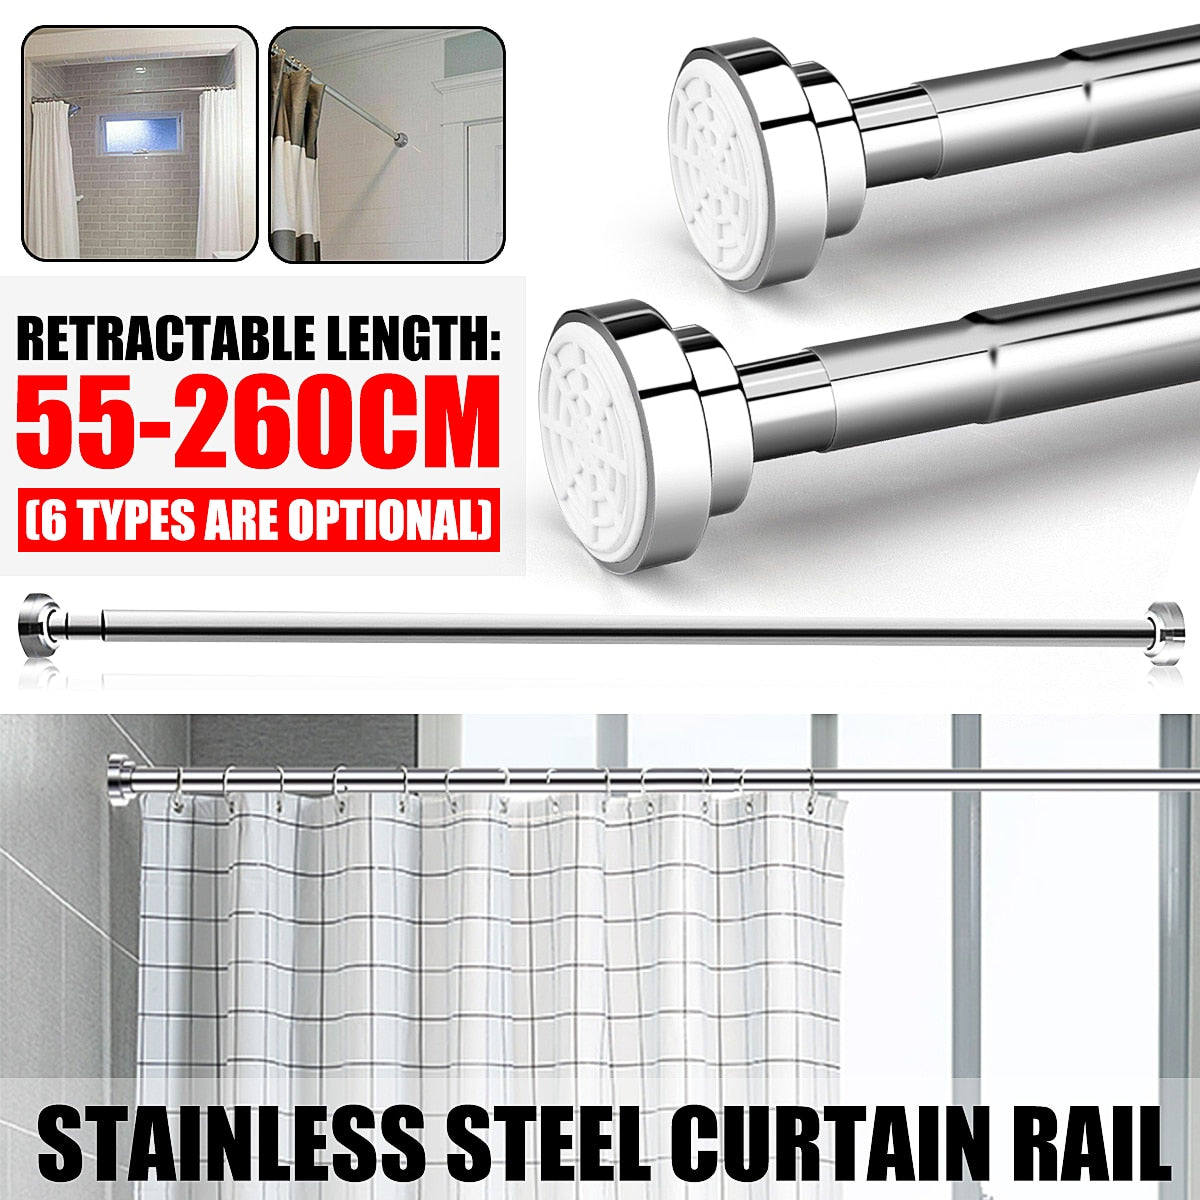 50CM-150CM Shower Curtain Rod Curtain Pole Adjustable Stainless Steel Spring Tension Rod Rail for Clothes / Towels / Curtains